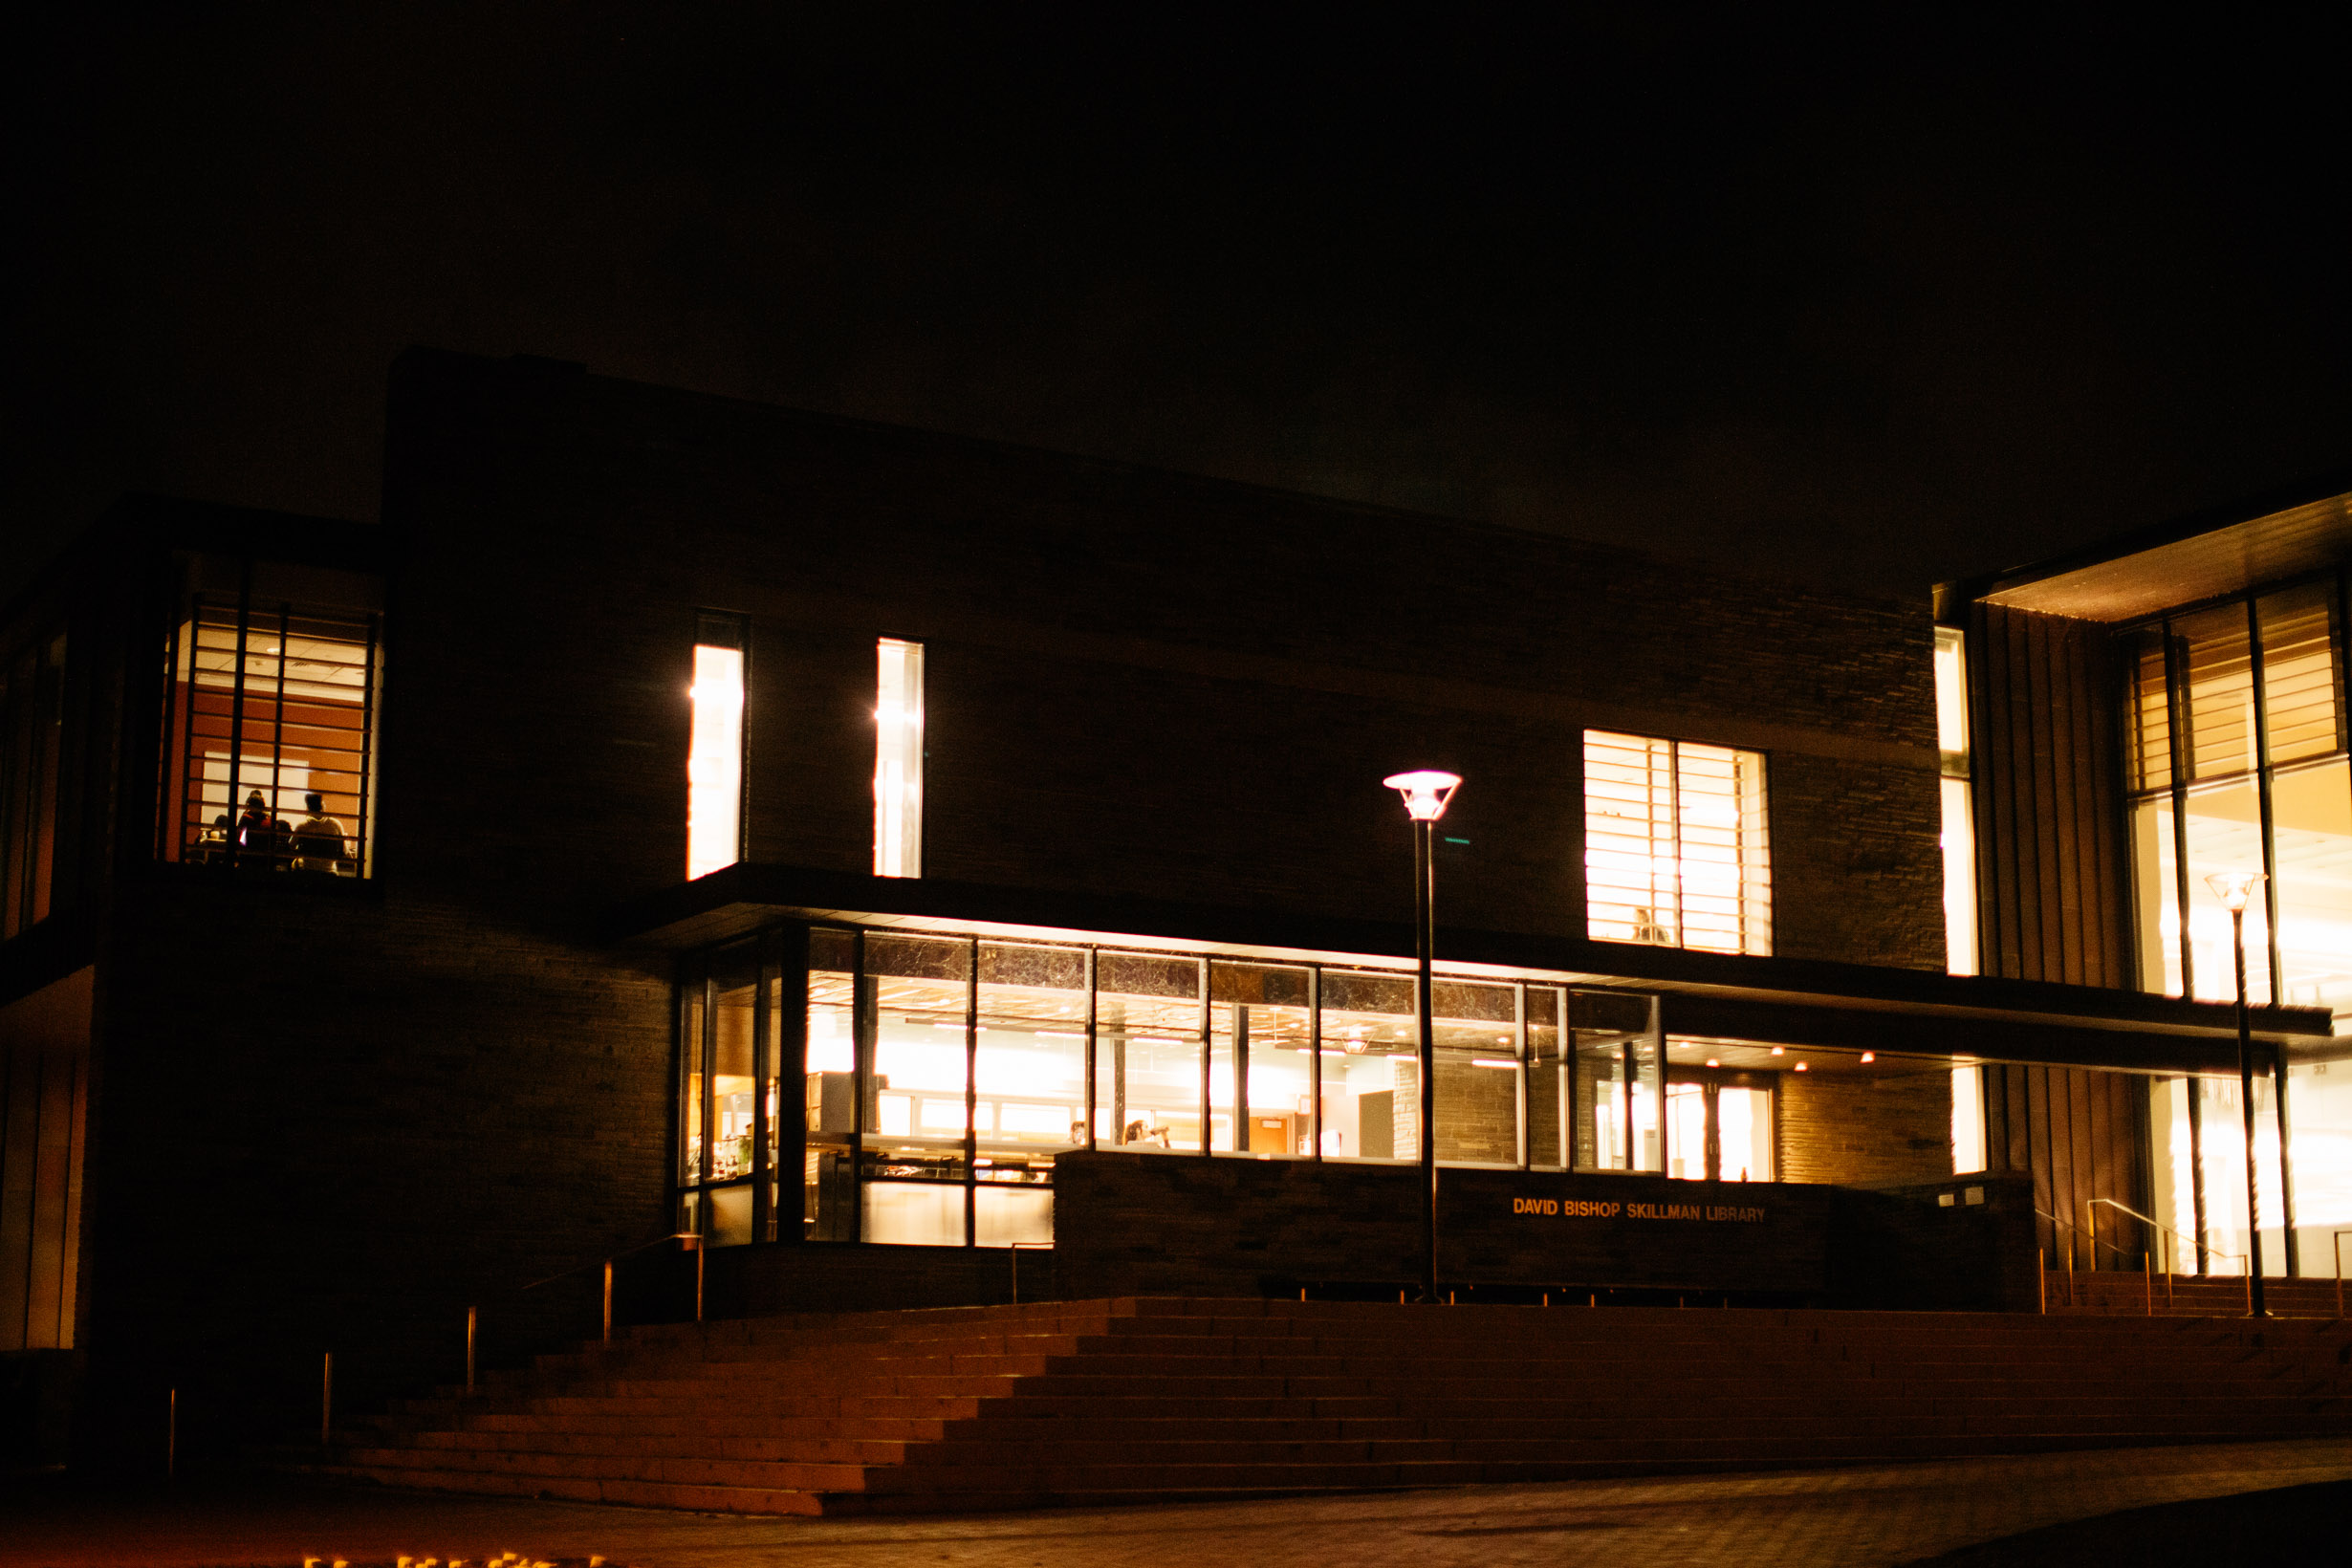 An exterior view of Skillman Library illuminated by LED lights at night